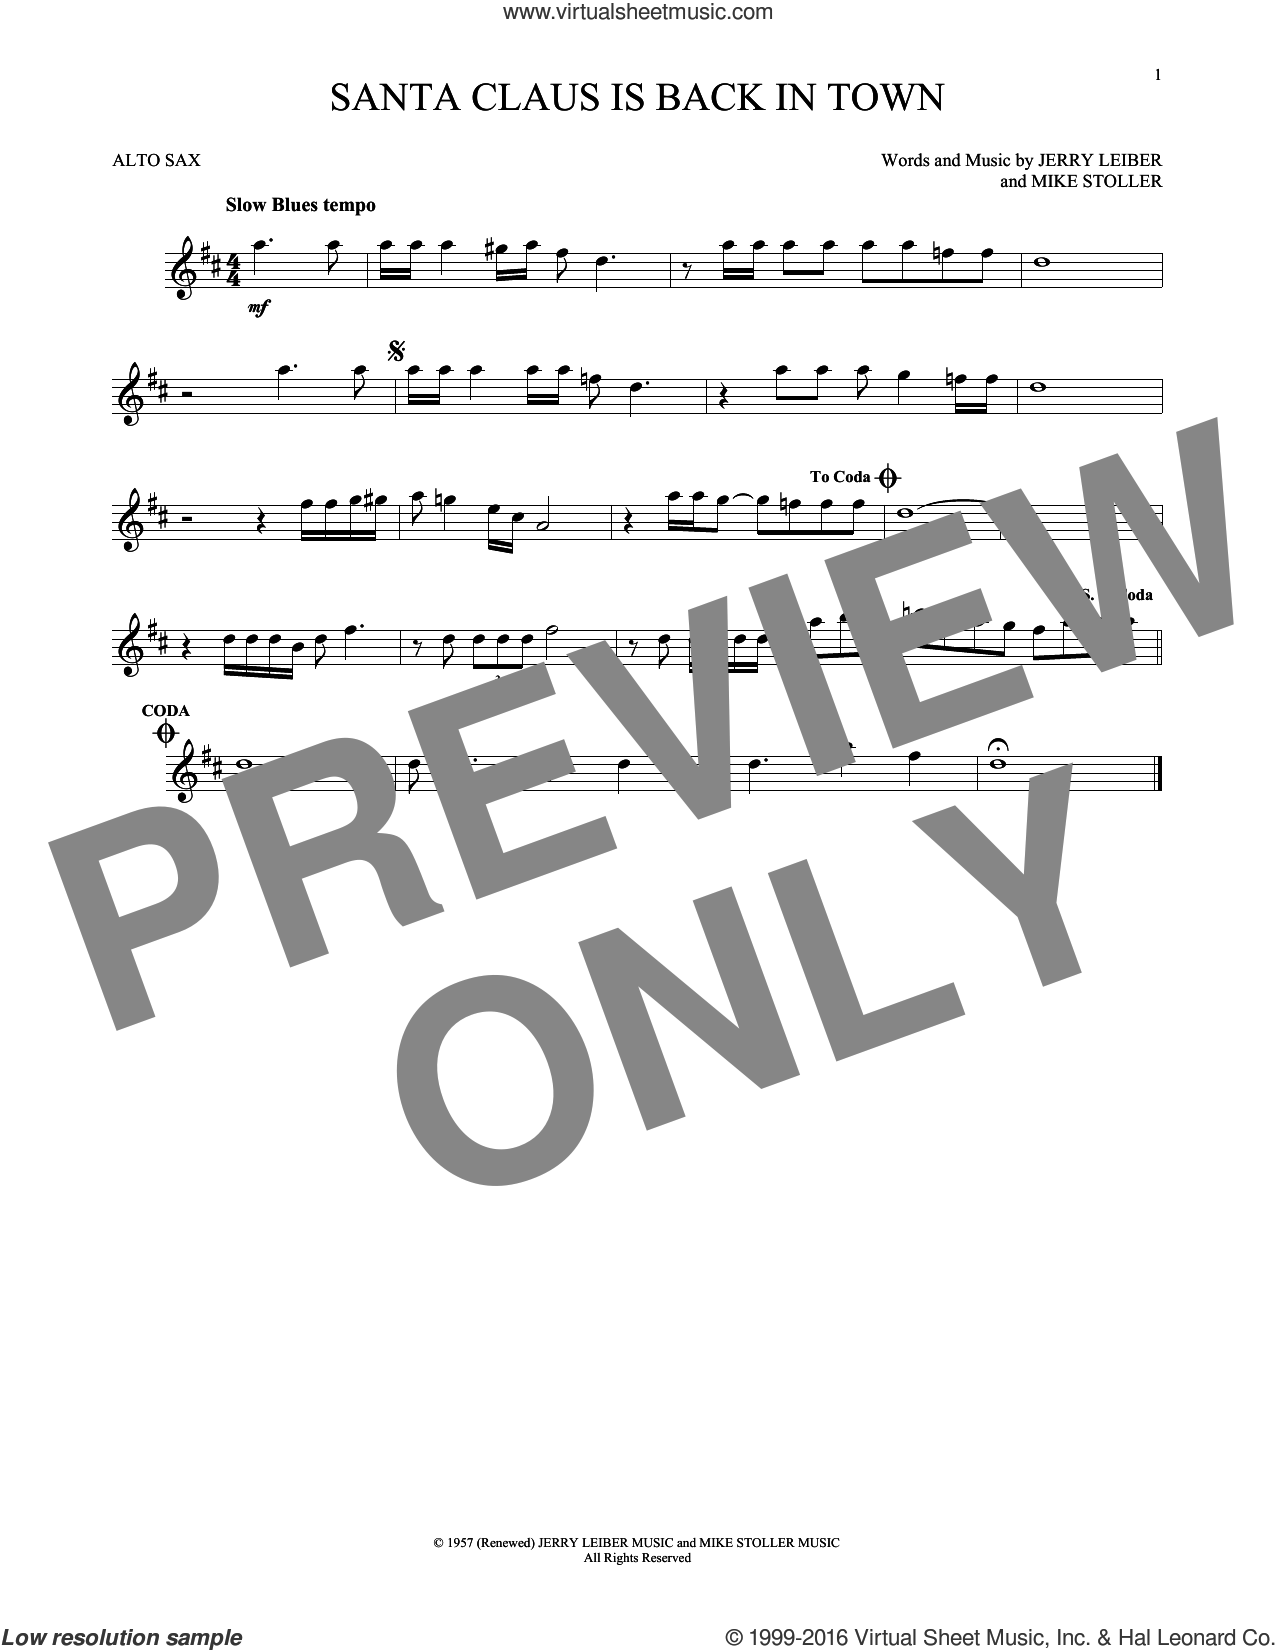 Santa Claus Is Back In Town sheet music for alto saxophone solo by Elvis Presley, Jerry Leiber and Mike Stoller, intermediate skill level